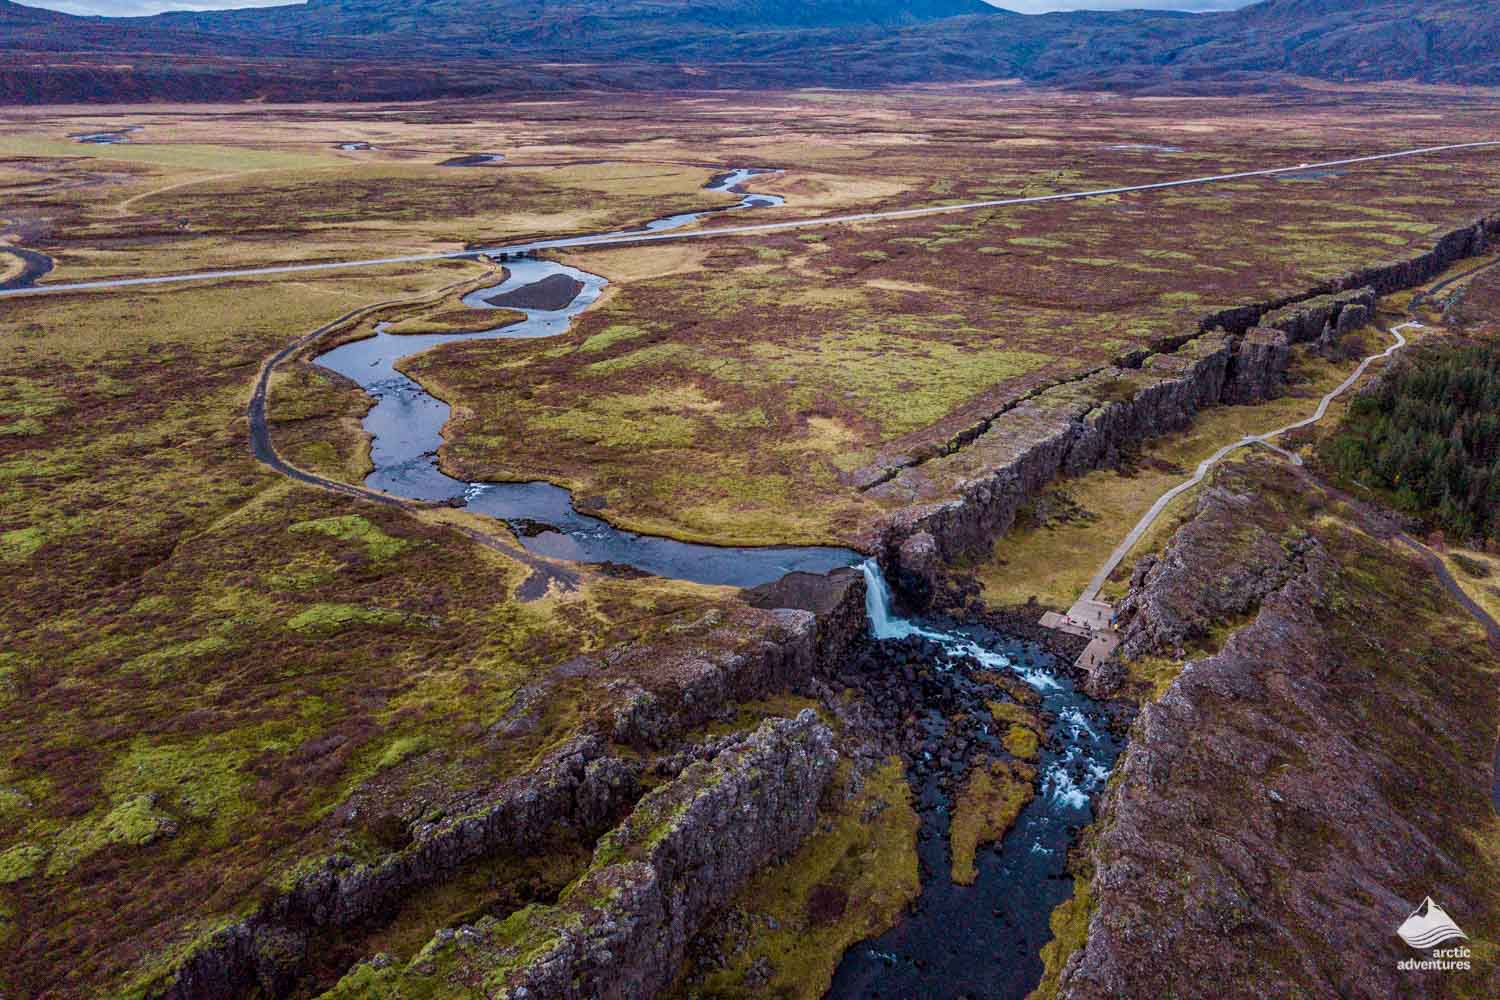 Thingvellir Oxararfoss waterfall from above